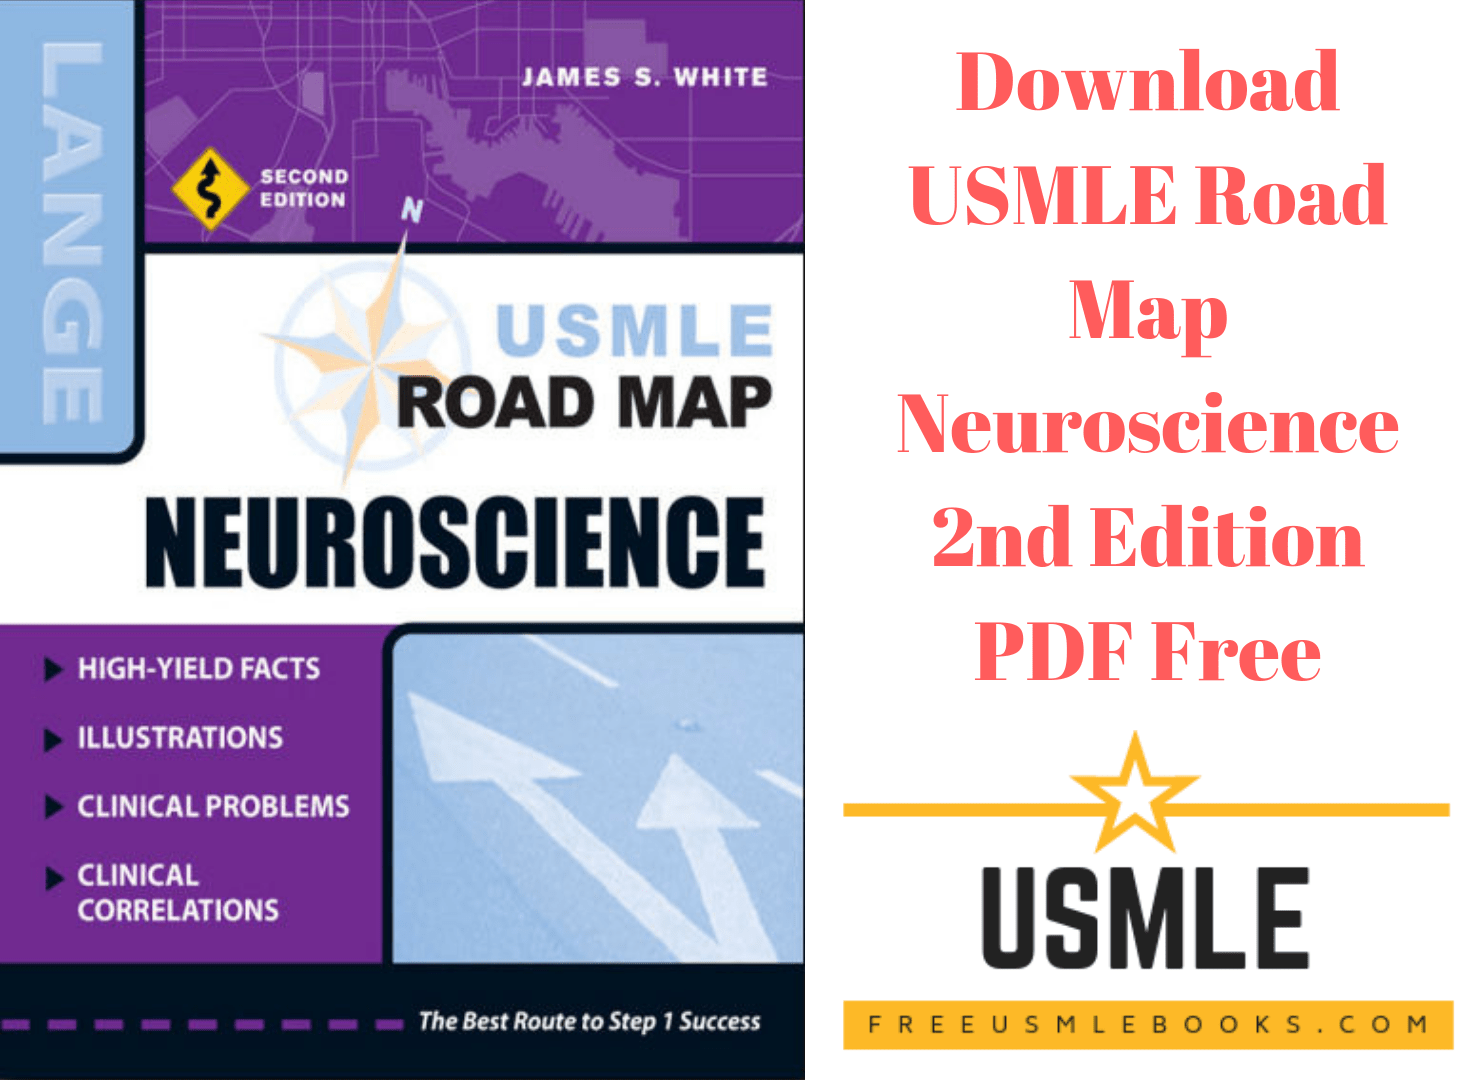 Download Usmle Road Map Neuroscience 2nd Edition Pdf Free Direct Link